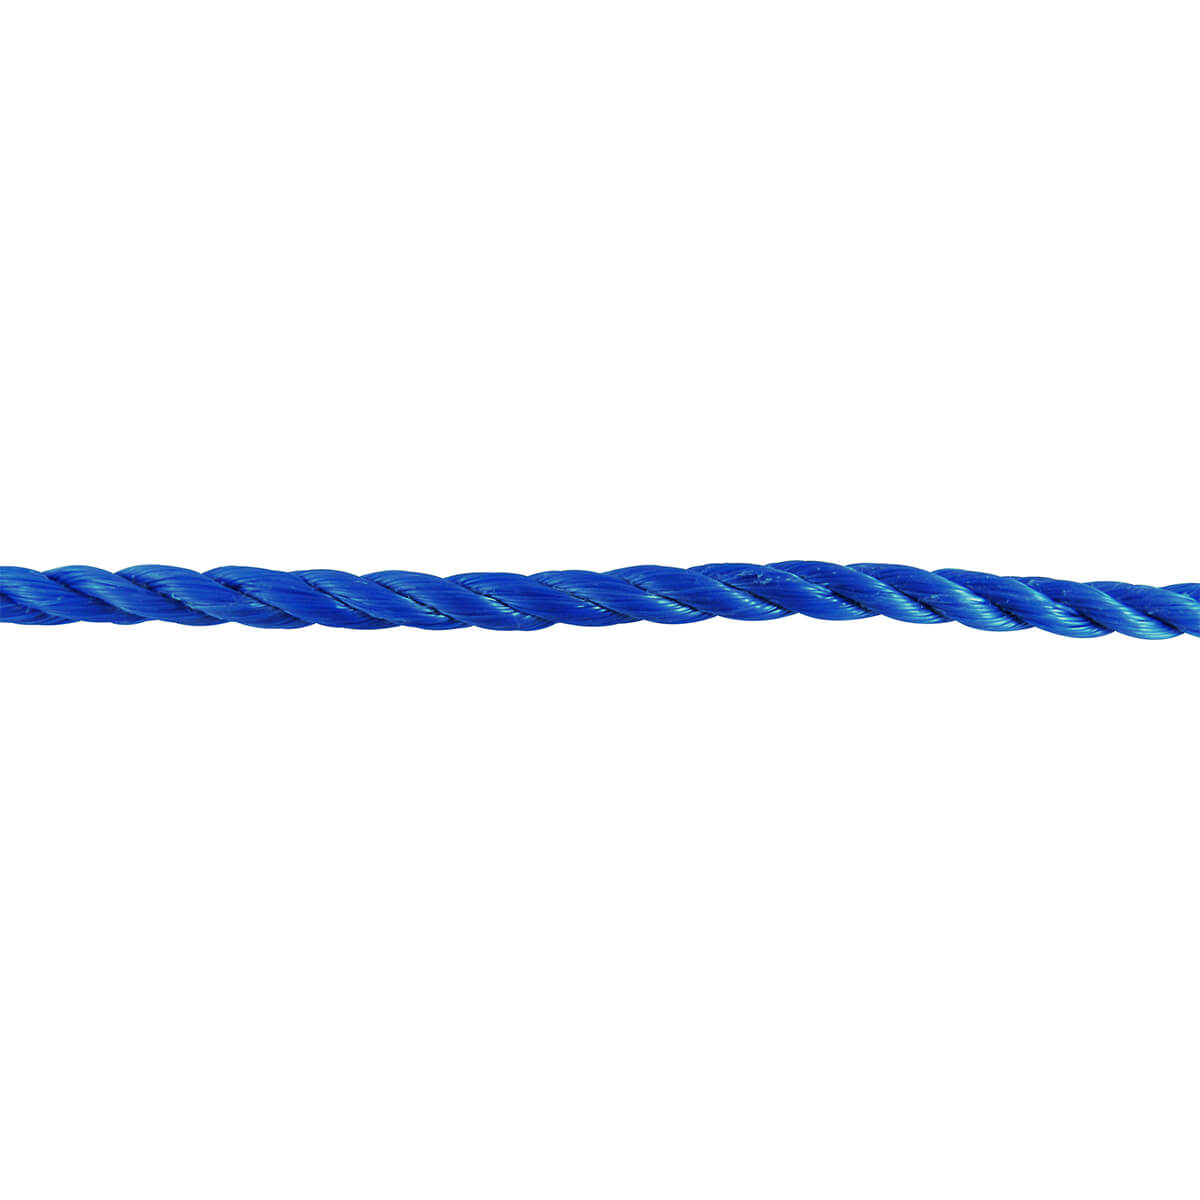 "Polypropylene Twisted Rope - Blue - 1/2"" (price per foot)"